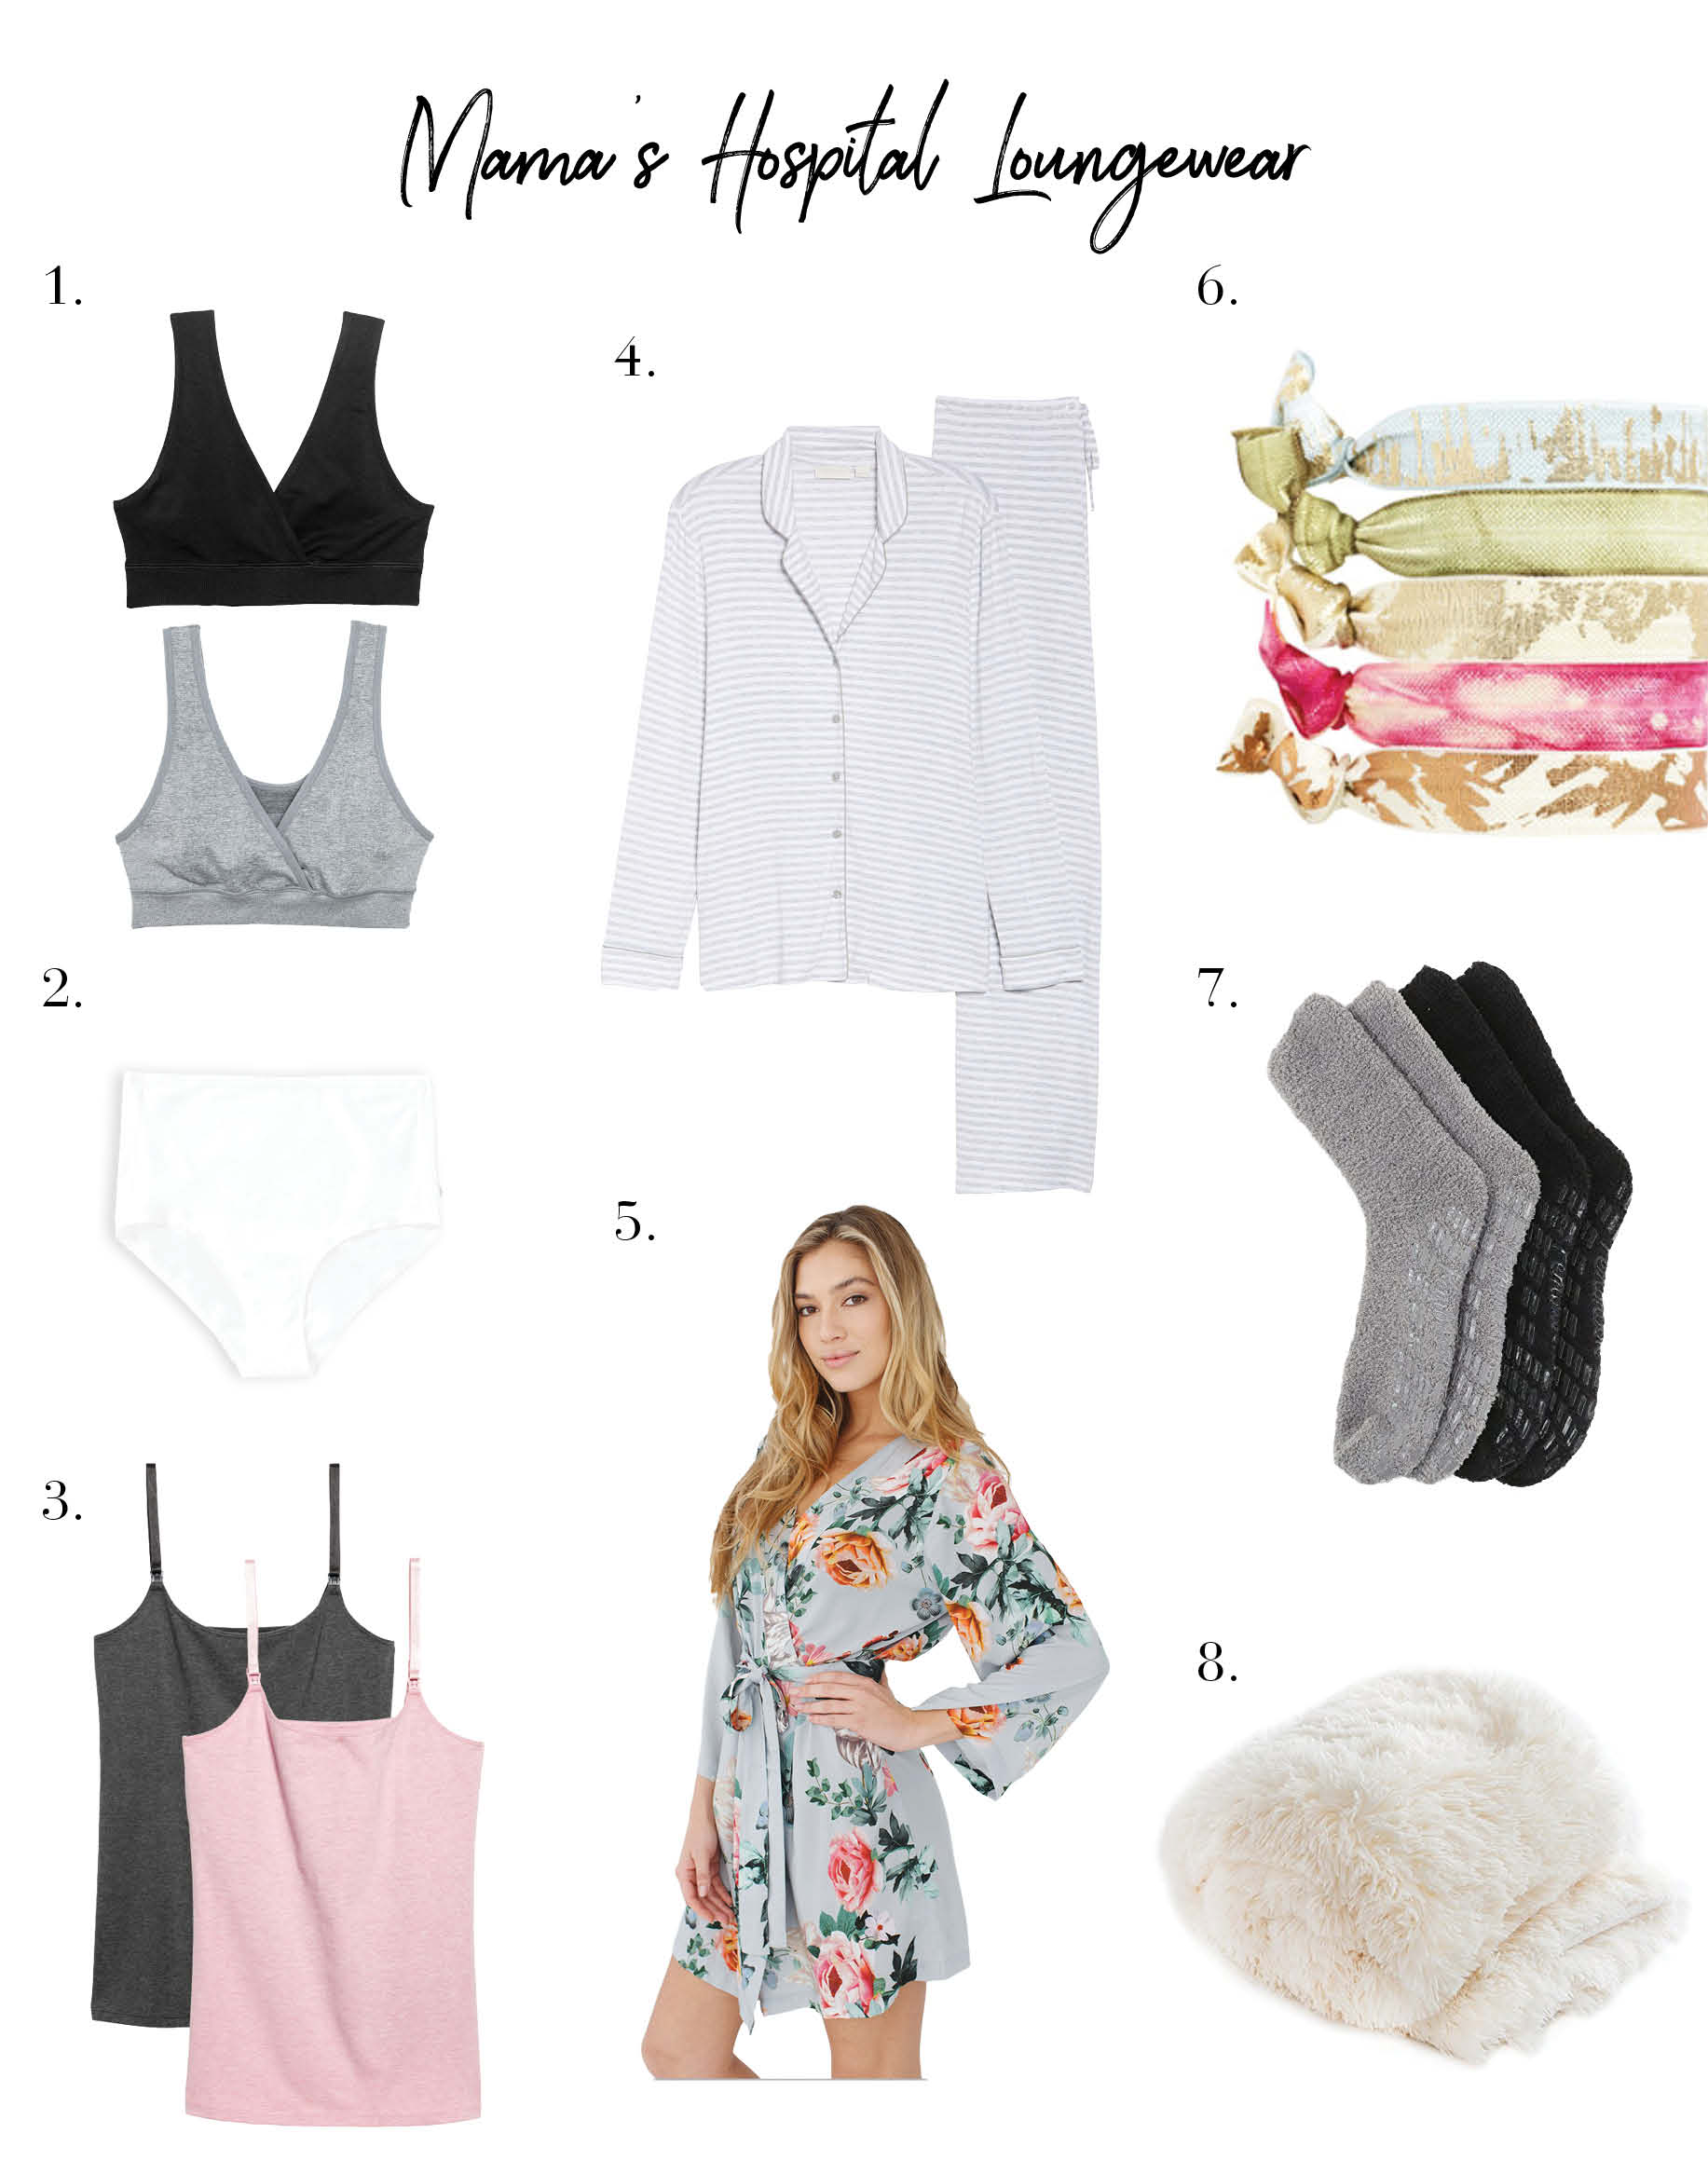 What to Pack + Wear for that Post-Baby Hospital Stay - The Mom Edit 9954008b24a79